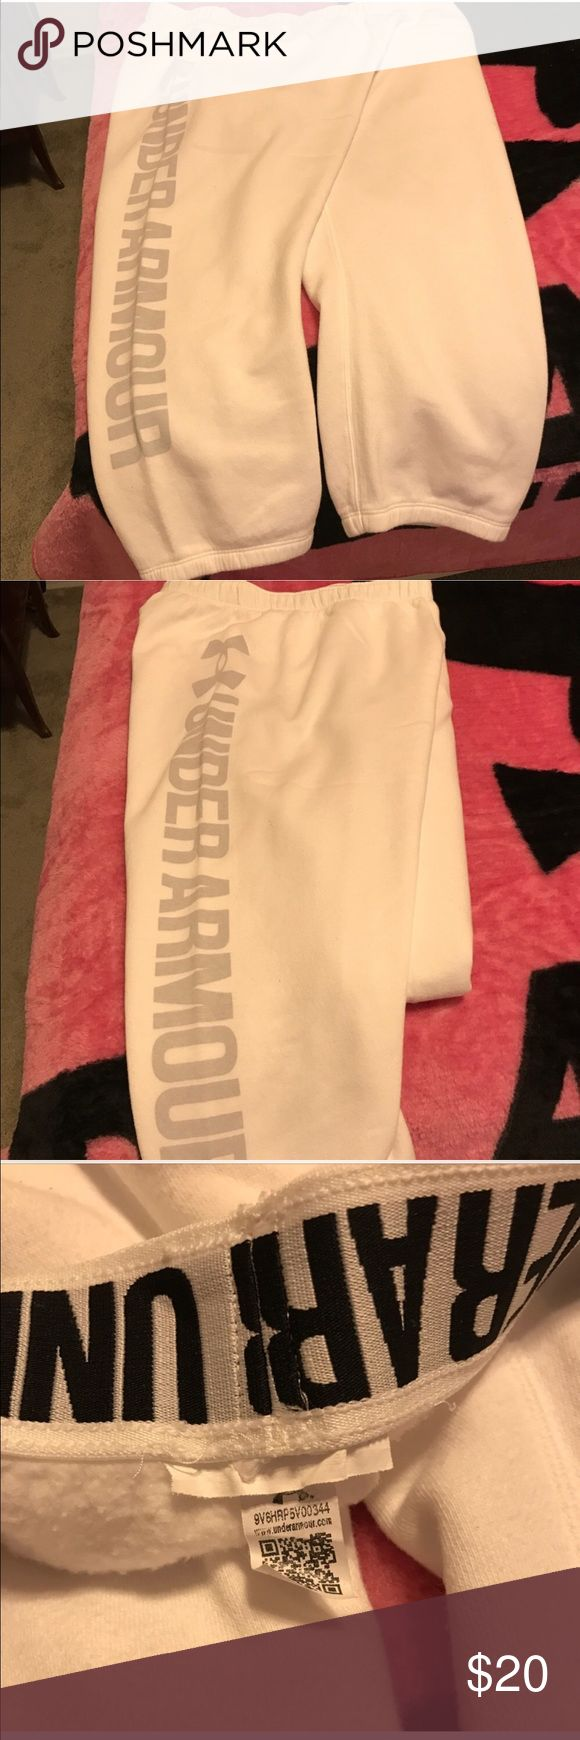 Women's Under Armour Walking/Jogging Capris NWOT Women's Under Armour Jogging/Walking Capris. These are New, I just tried them on, Never wore them. Capris are White with Grey lettering. They're soft and very warm. Size: XXL 🚨Sorry, No Trades 🚨 Under Armour Pants Capris